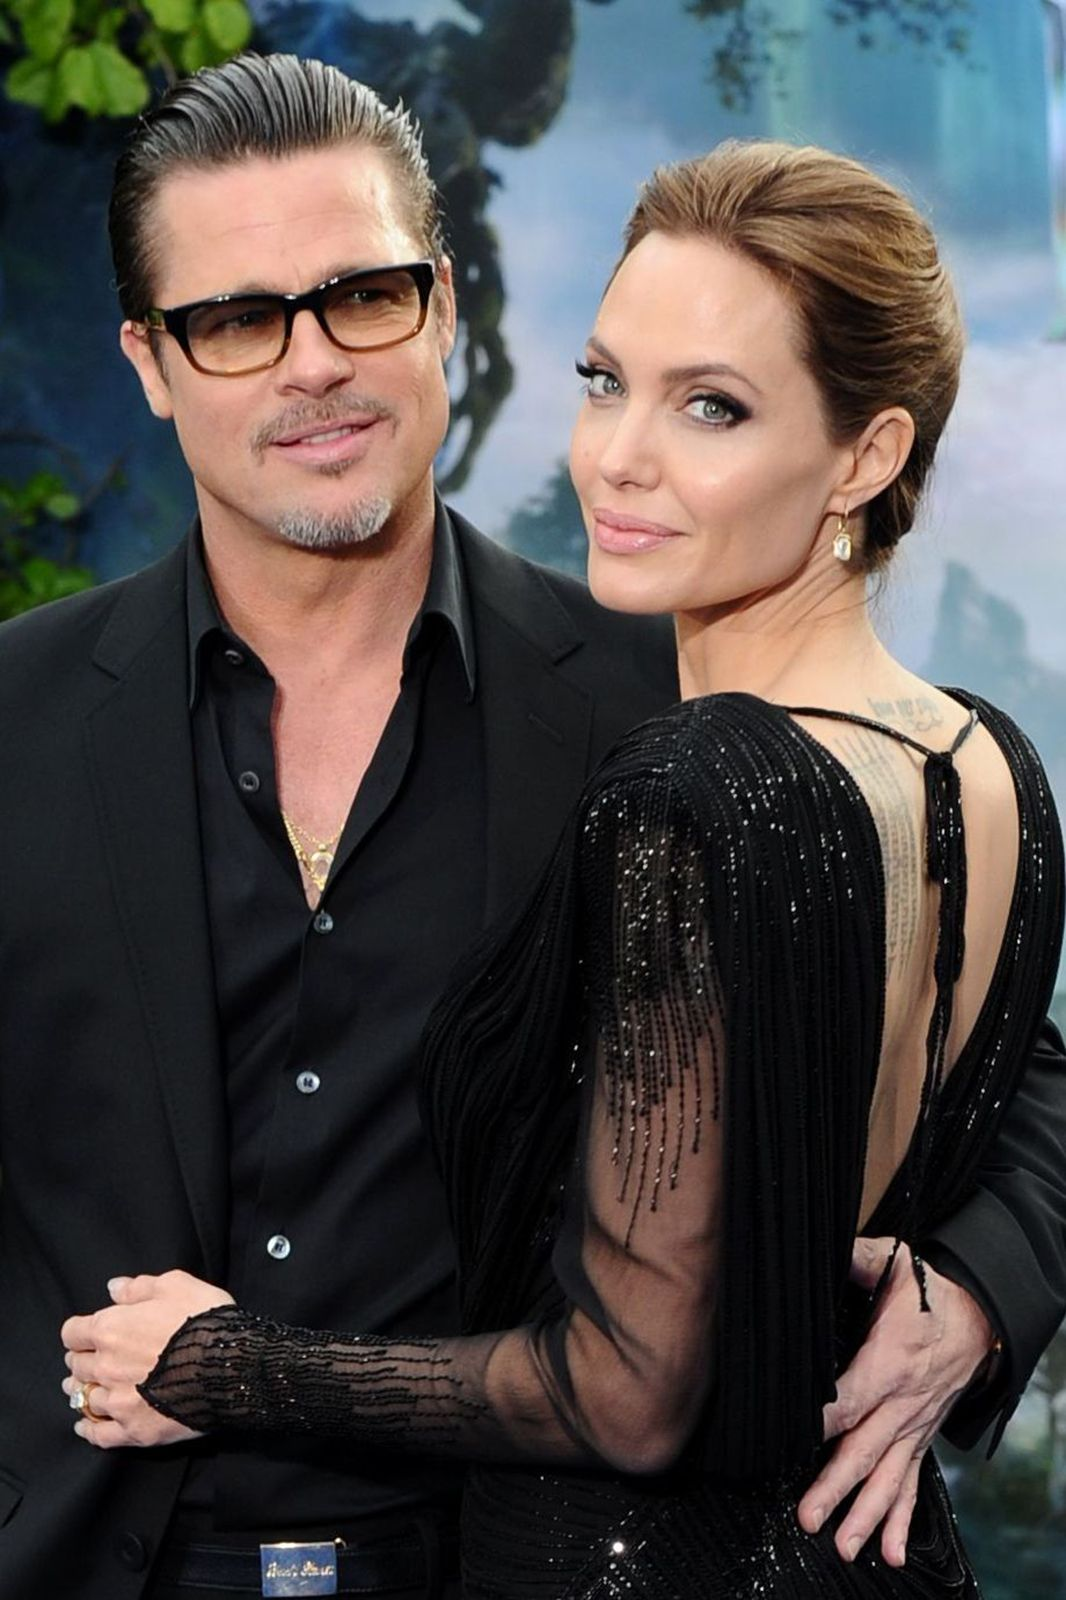 An Ode To Brad & Angelina: Hollywood's Most Magnificent Newlyweds   http://www.refinery29.com/2014/08/73632/brad-pitt-angelina-jolie-wedding#slide10  He's mine/she's mine, the his-and-her edition.